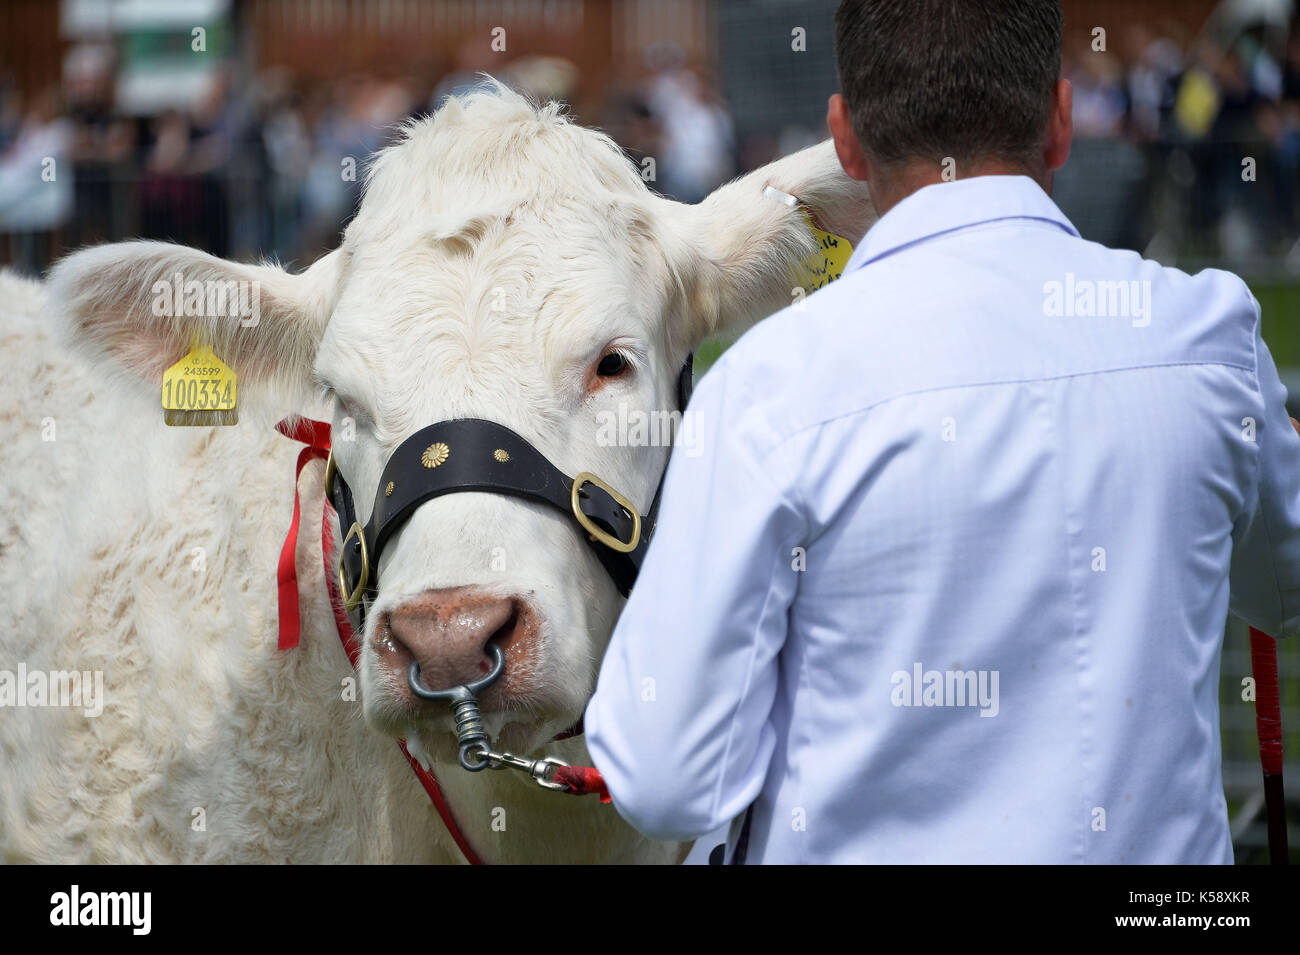 South of England Show 2016 at Ardingly. A farmer with a bull at the cattle show. Credit Terry Applin - Stock Image